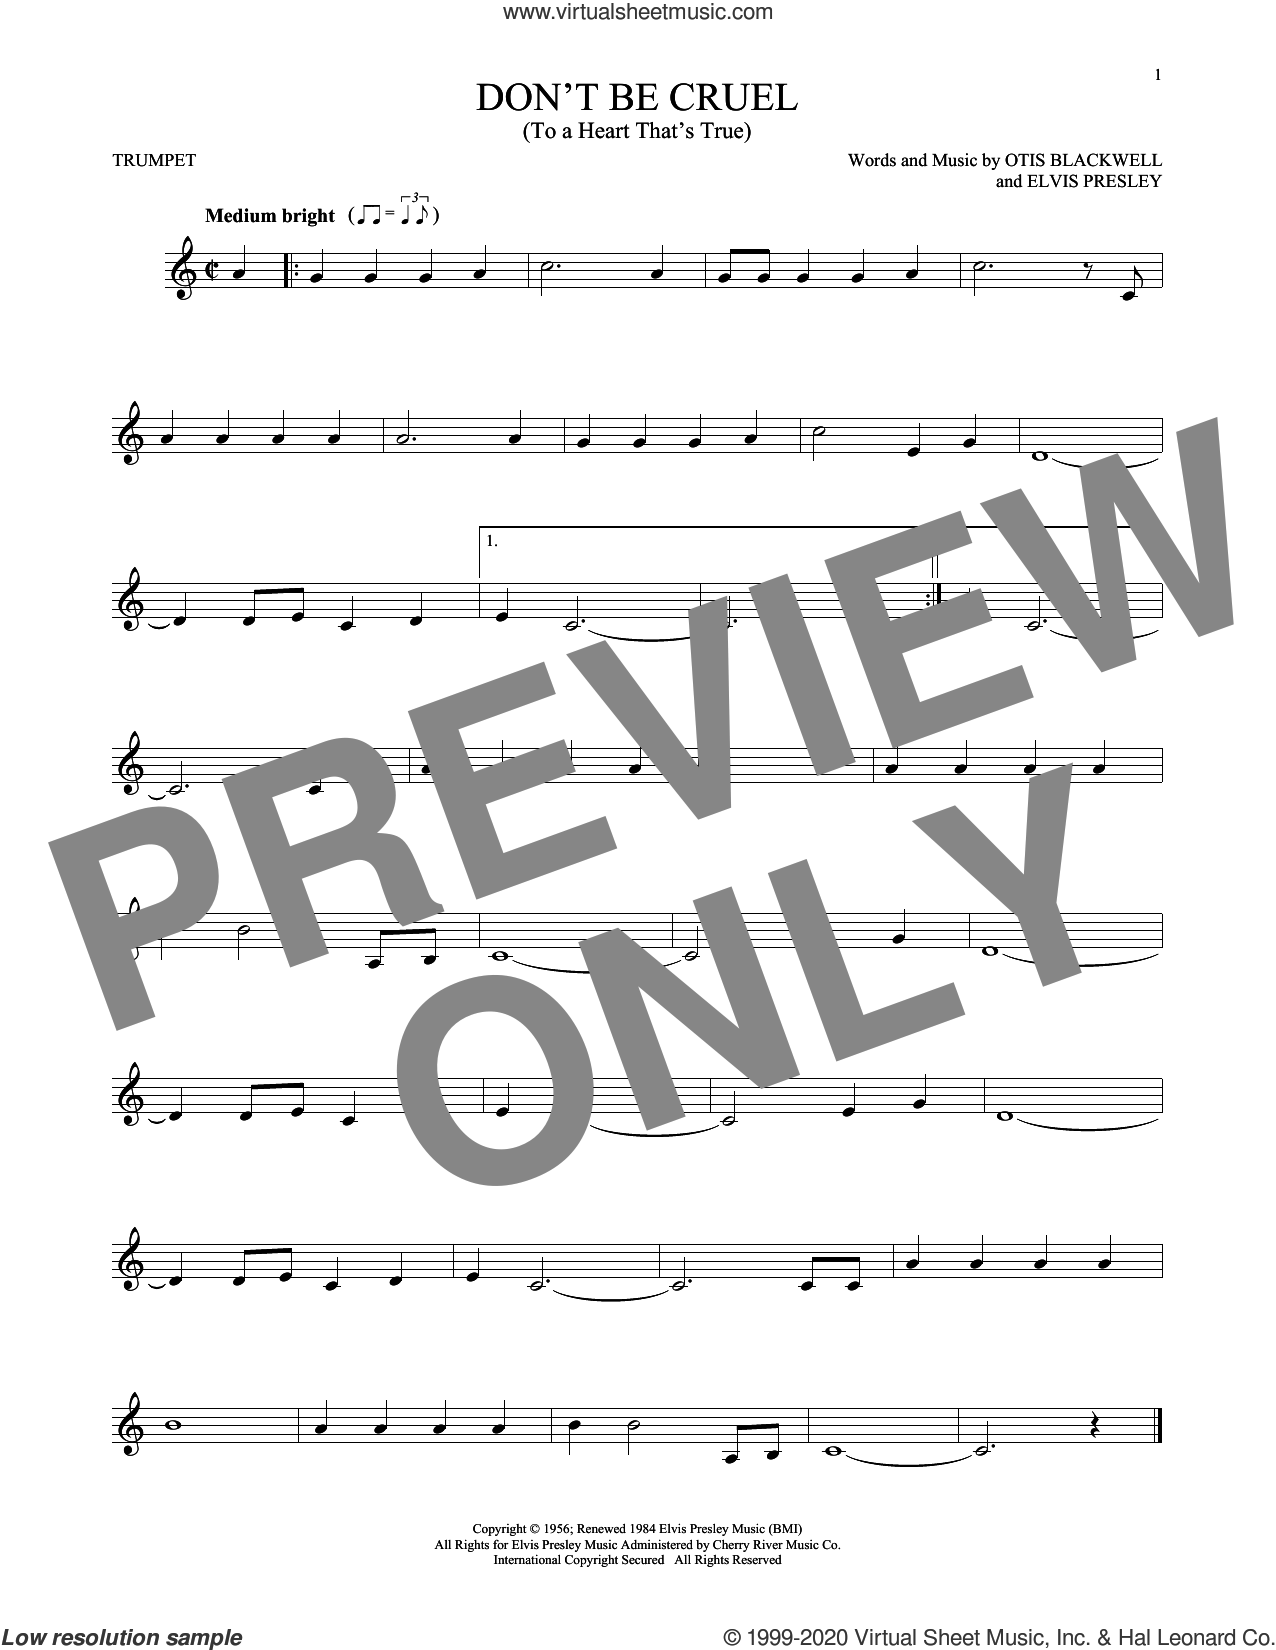 Don't Be Cruel (To A Heart That's True) sheet music for trumpet solo by Elvis Presley and Otis Blackwell, intermediate skill level